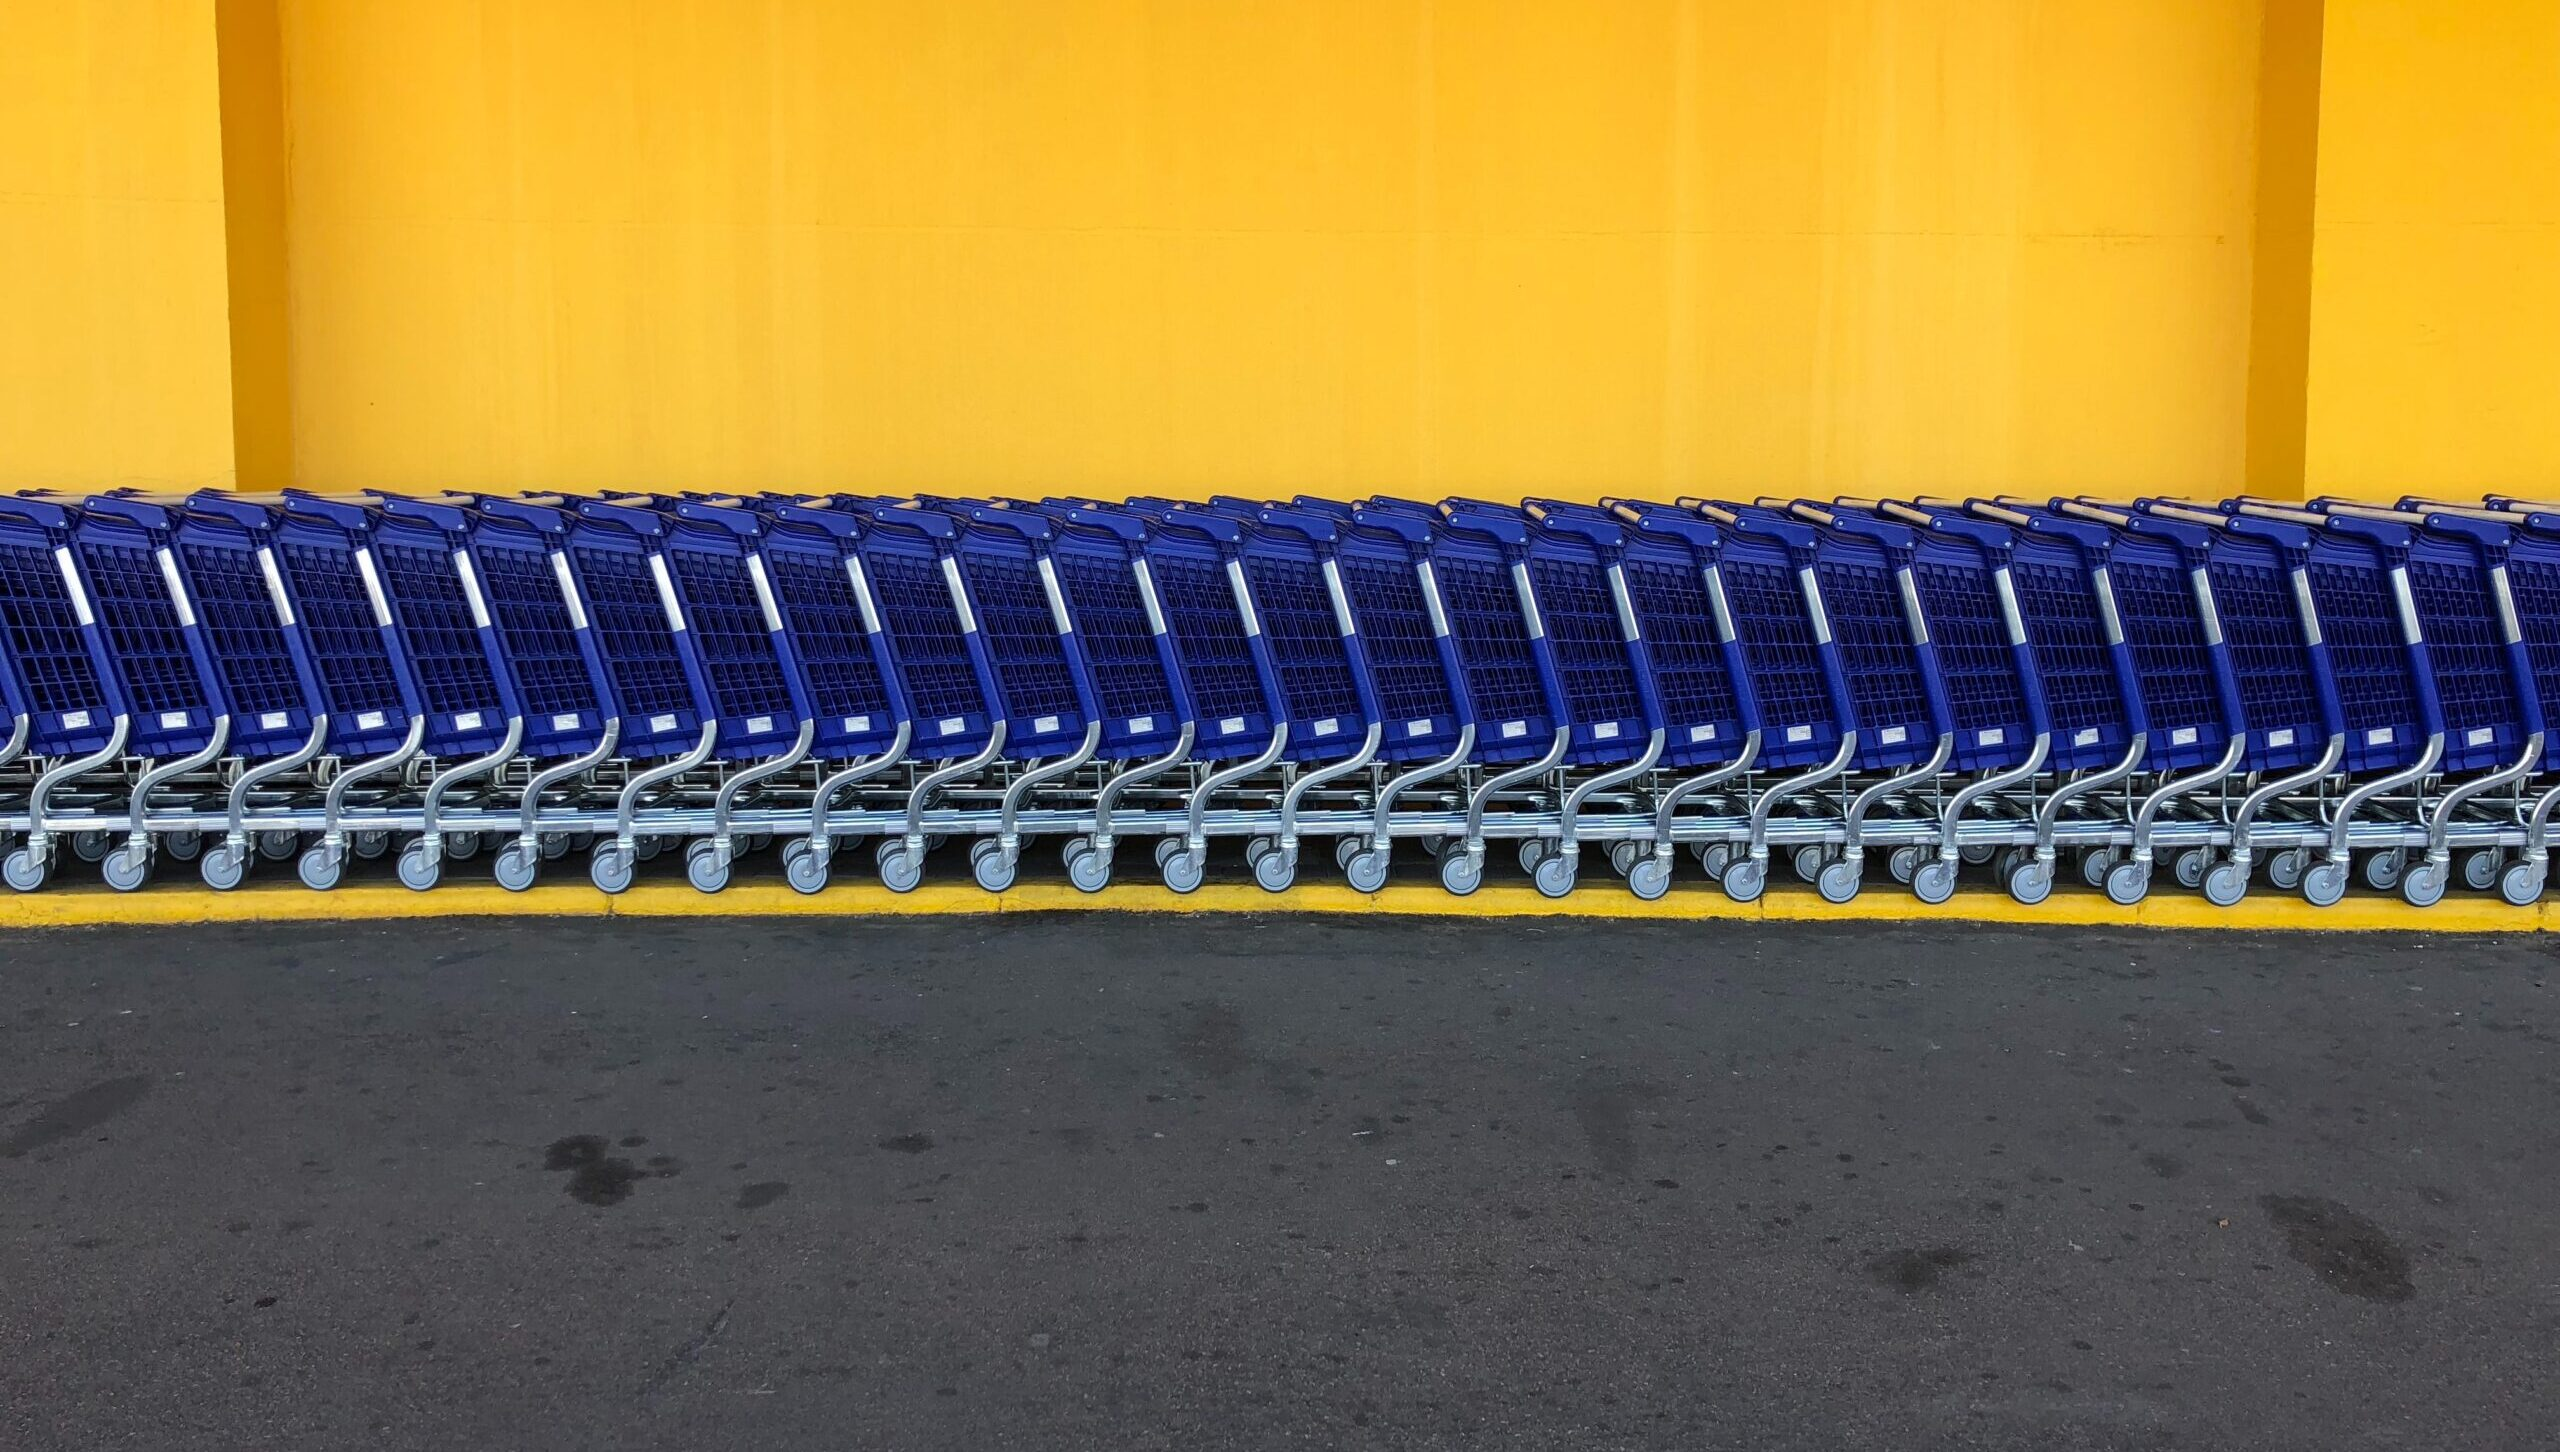 line of blue shopping carts